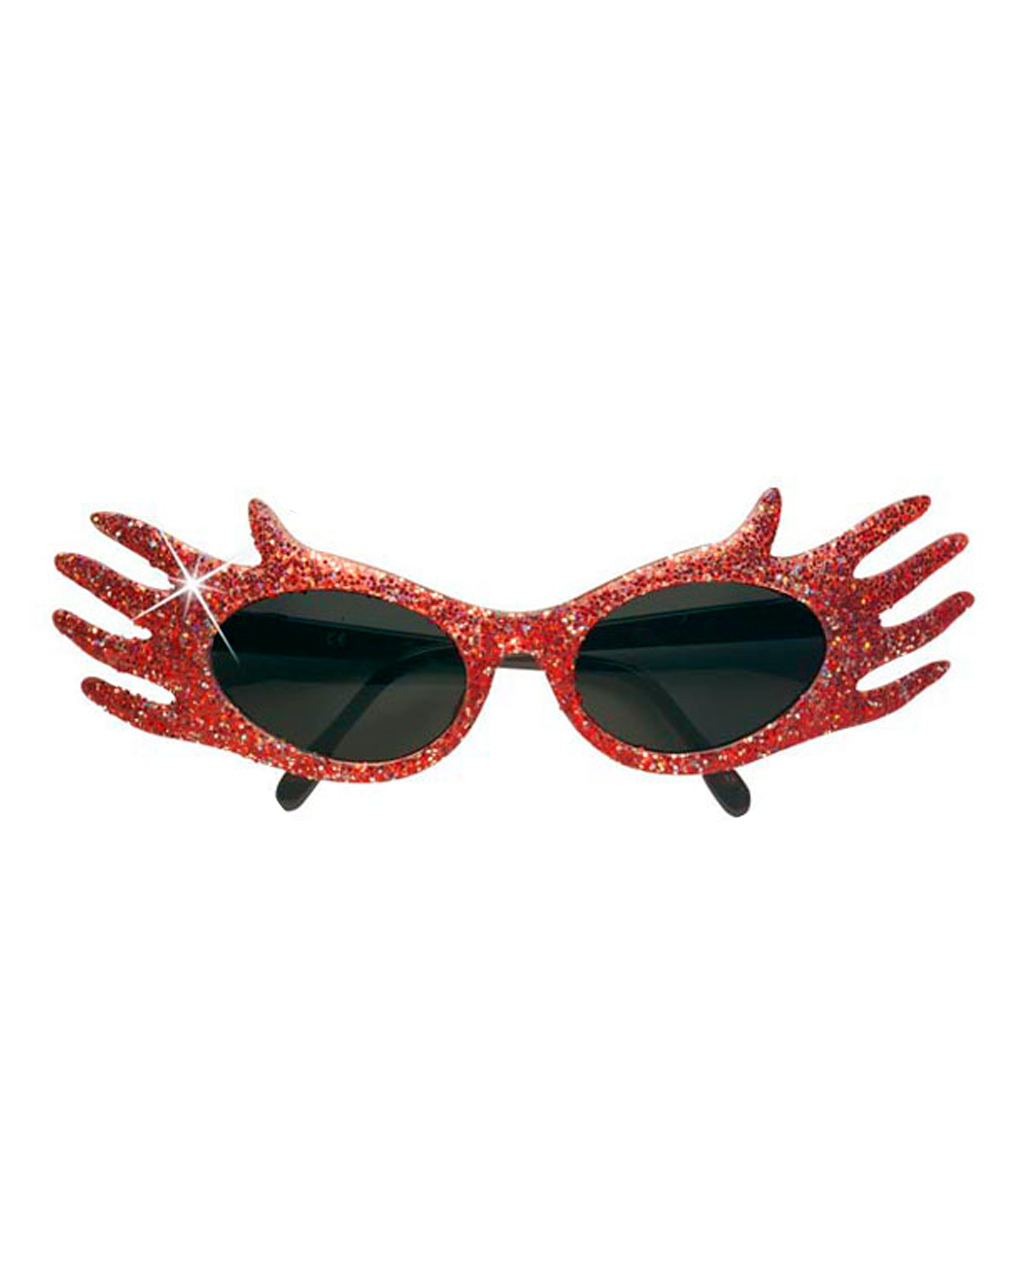 new product 8dc72 58e68 Space Jam Glitter Sunglasses Red